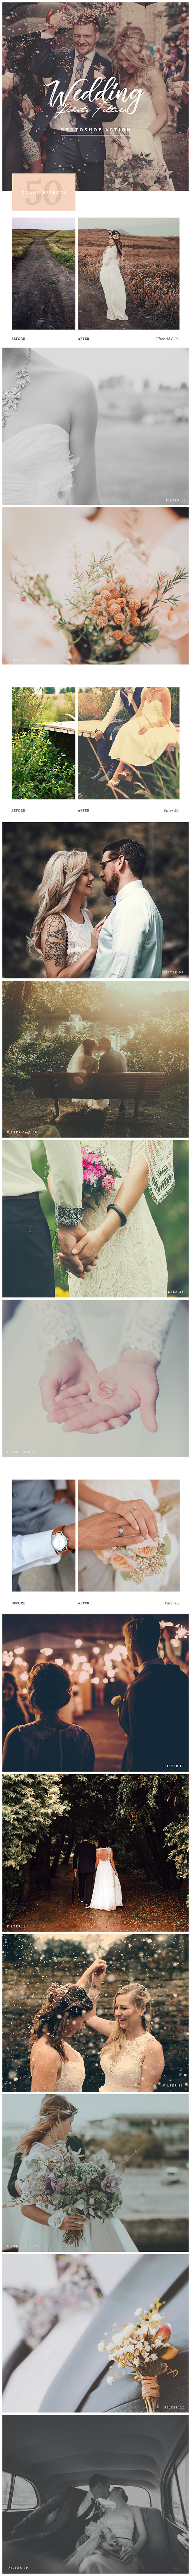 GraphicRiver Wedding Photo Filters Photoshop Action 20774807